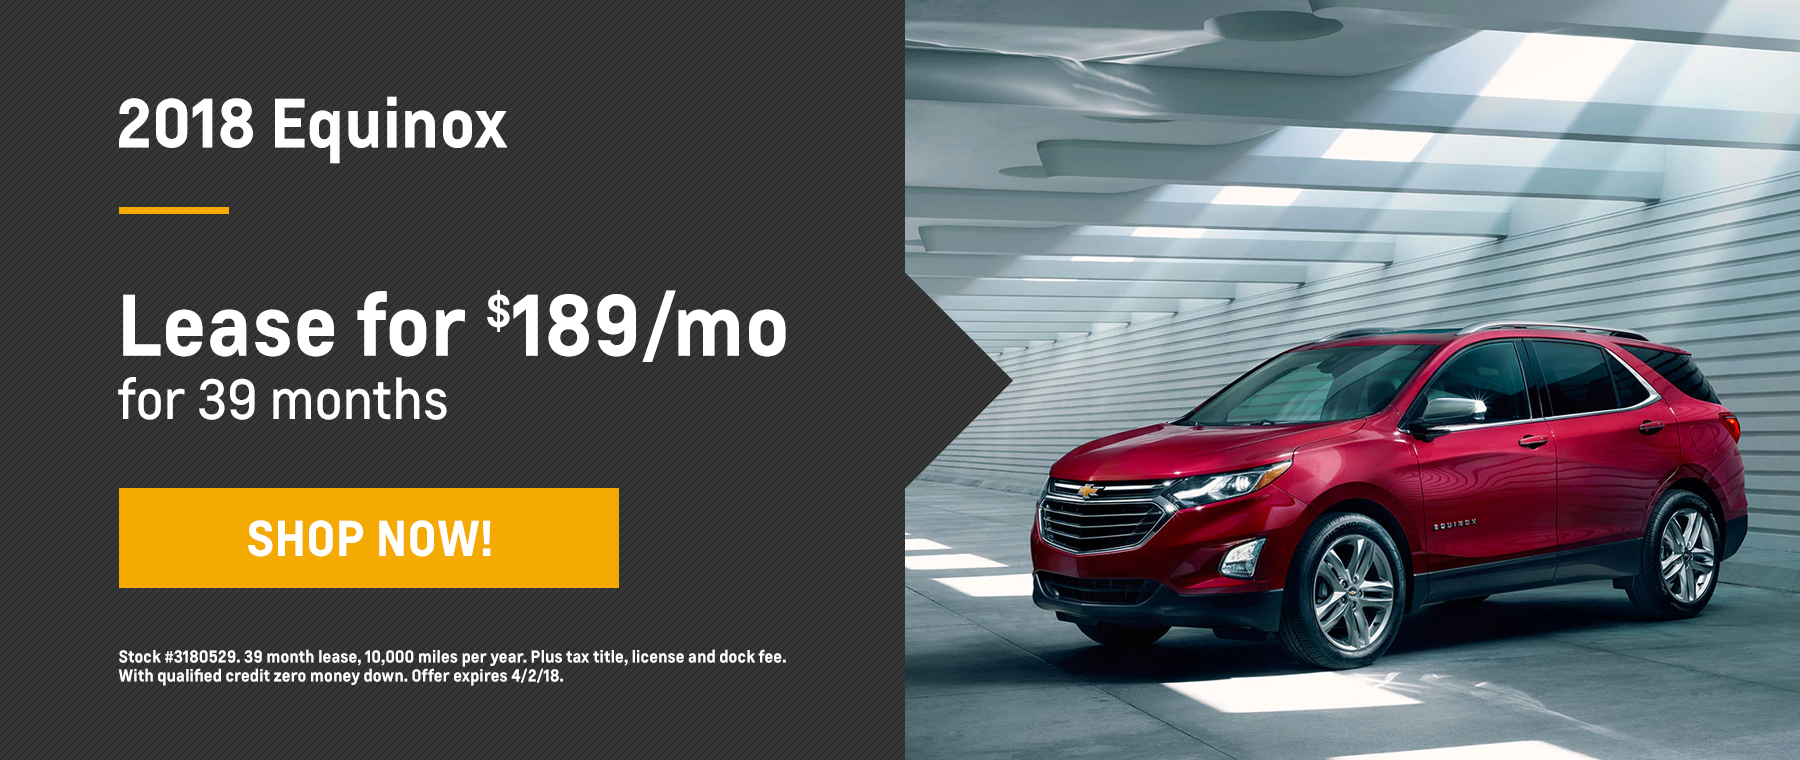 Equinox Biggers Chevy March Offer Homepage